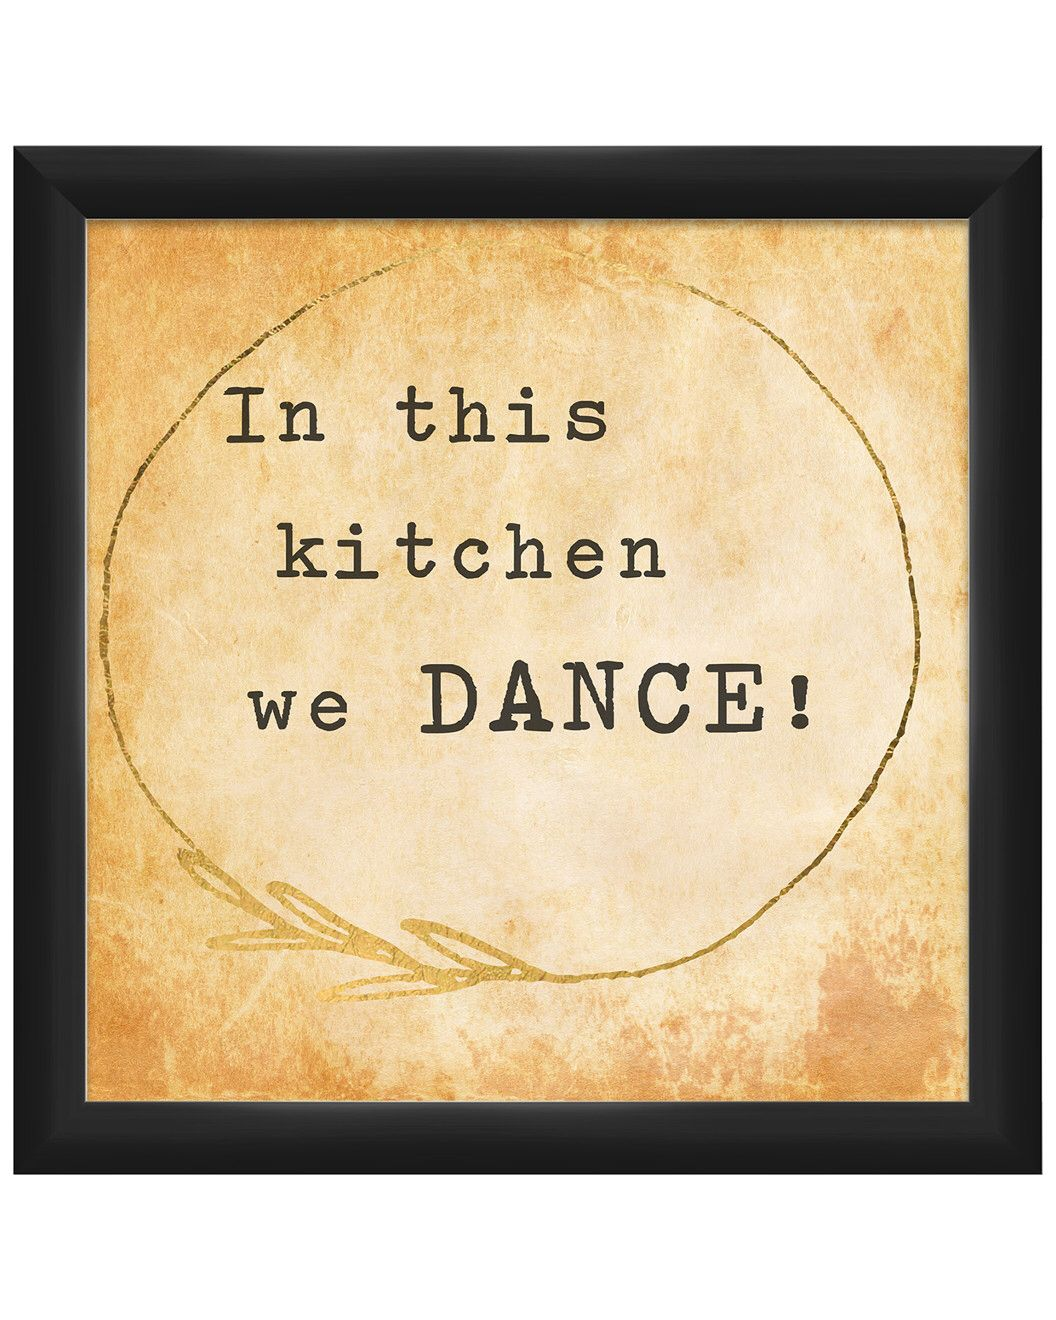 You need to see this In This Kitchen We Dance Framed Giclee Print on Rue La La.  Get in and shop (quickly!): https://www.ruelala.com/boutique/product/102162/32284726?inv=ailiescu02&aid=6191